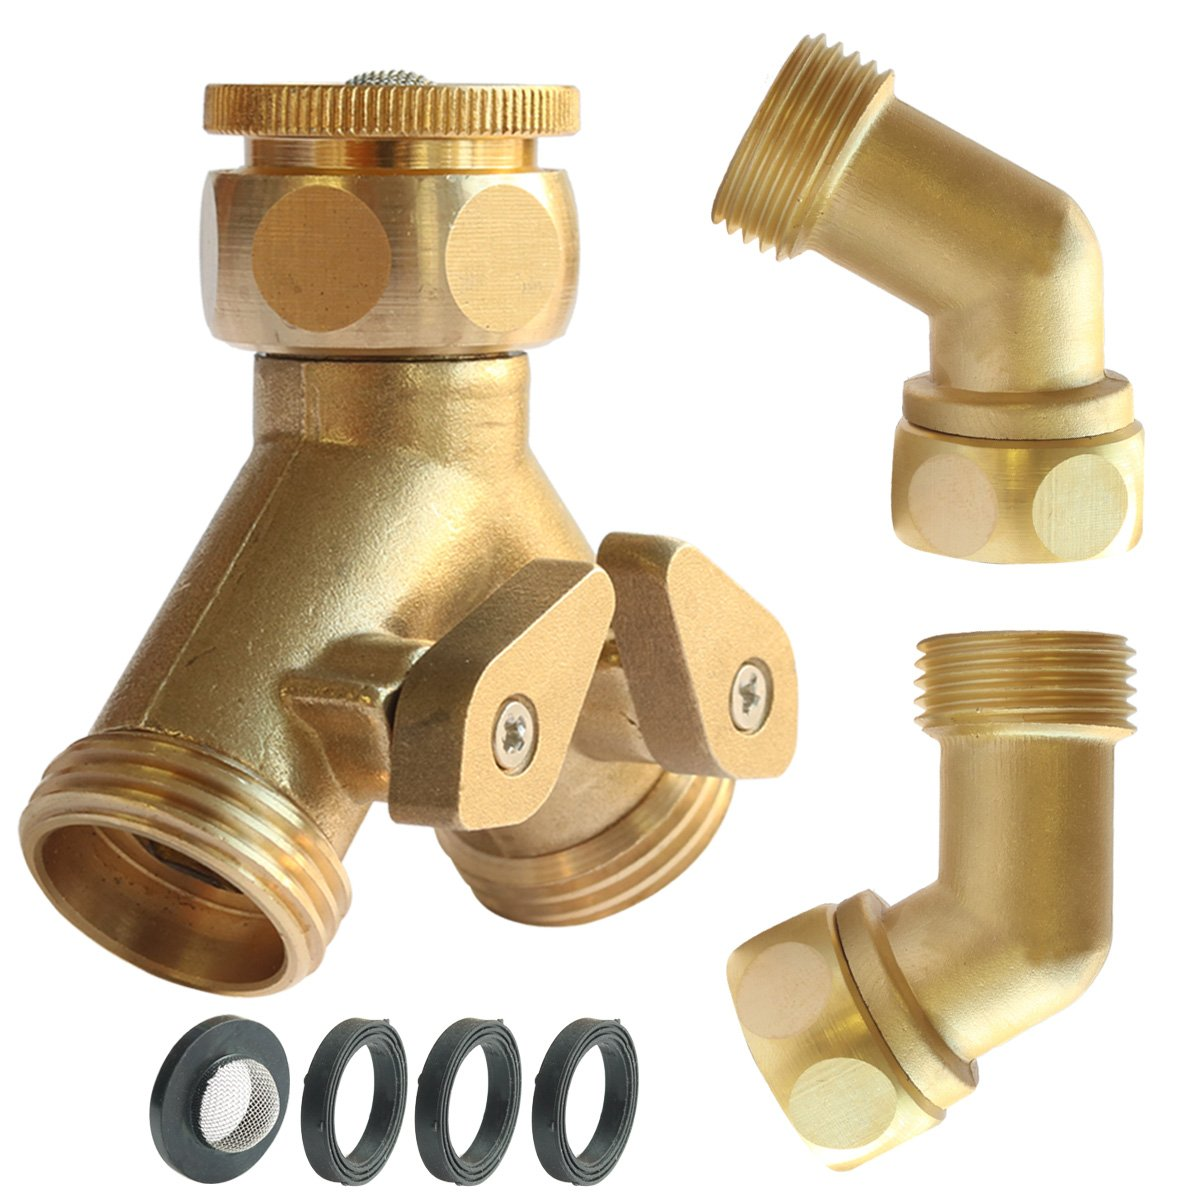 PLG 2 Way Hose Shut-Off Valve + Hose Elbow Connector,Heavy Duty Brass,Filter Washers & Faucet Adapter Included.